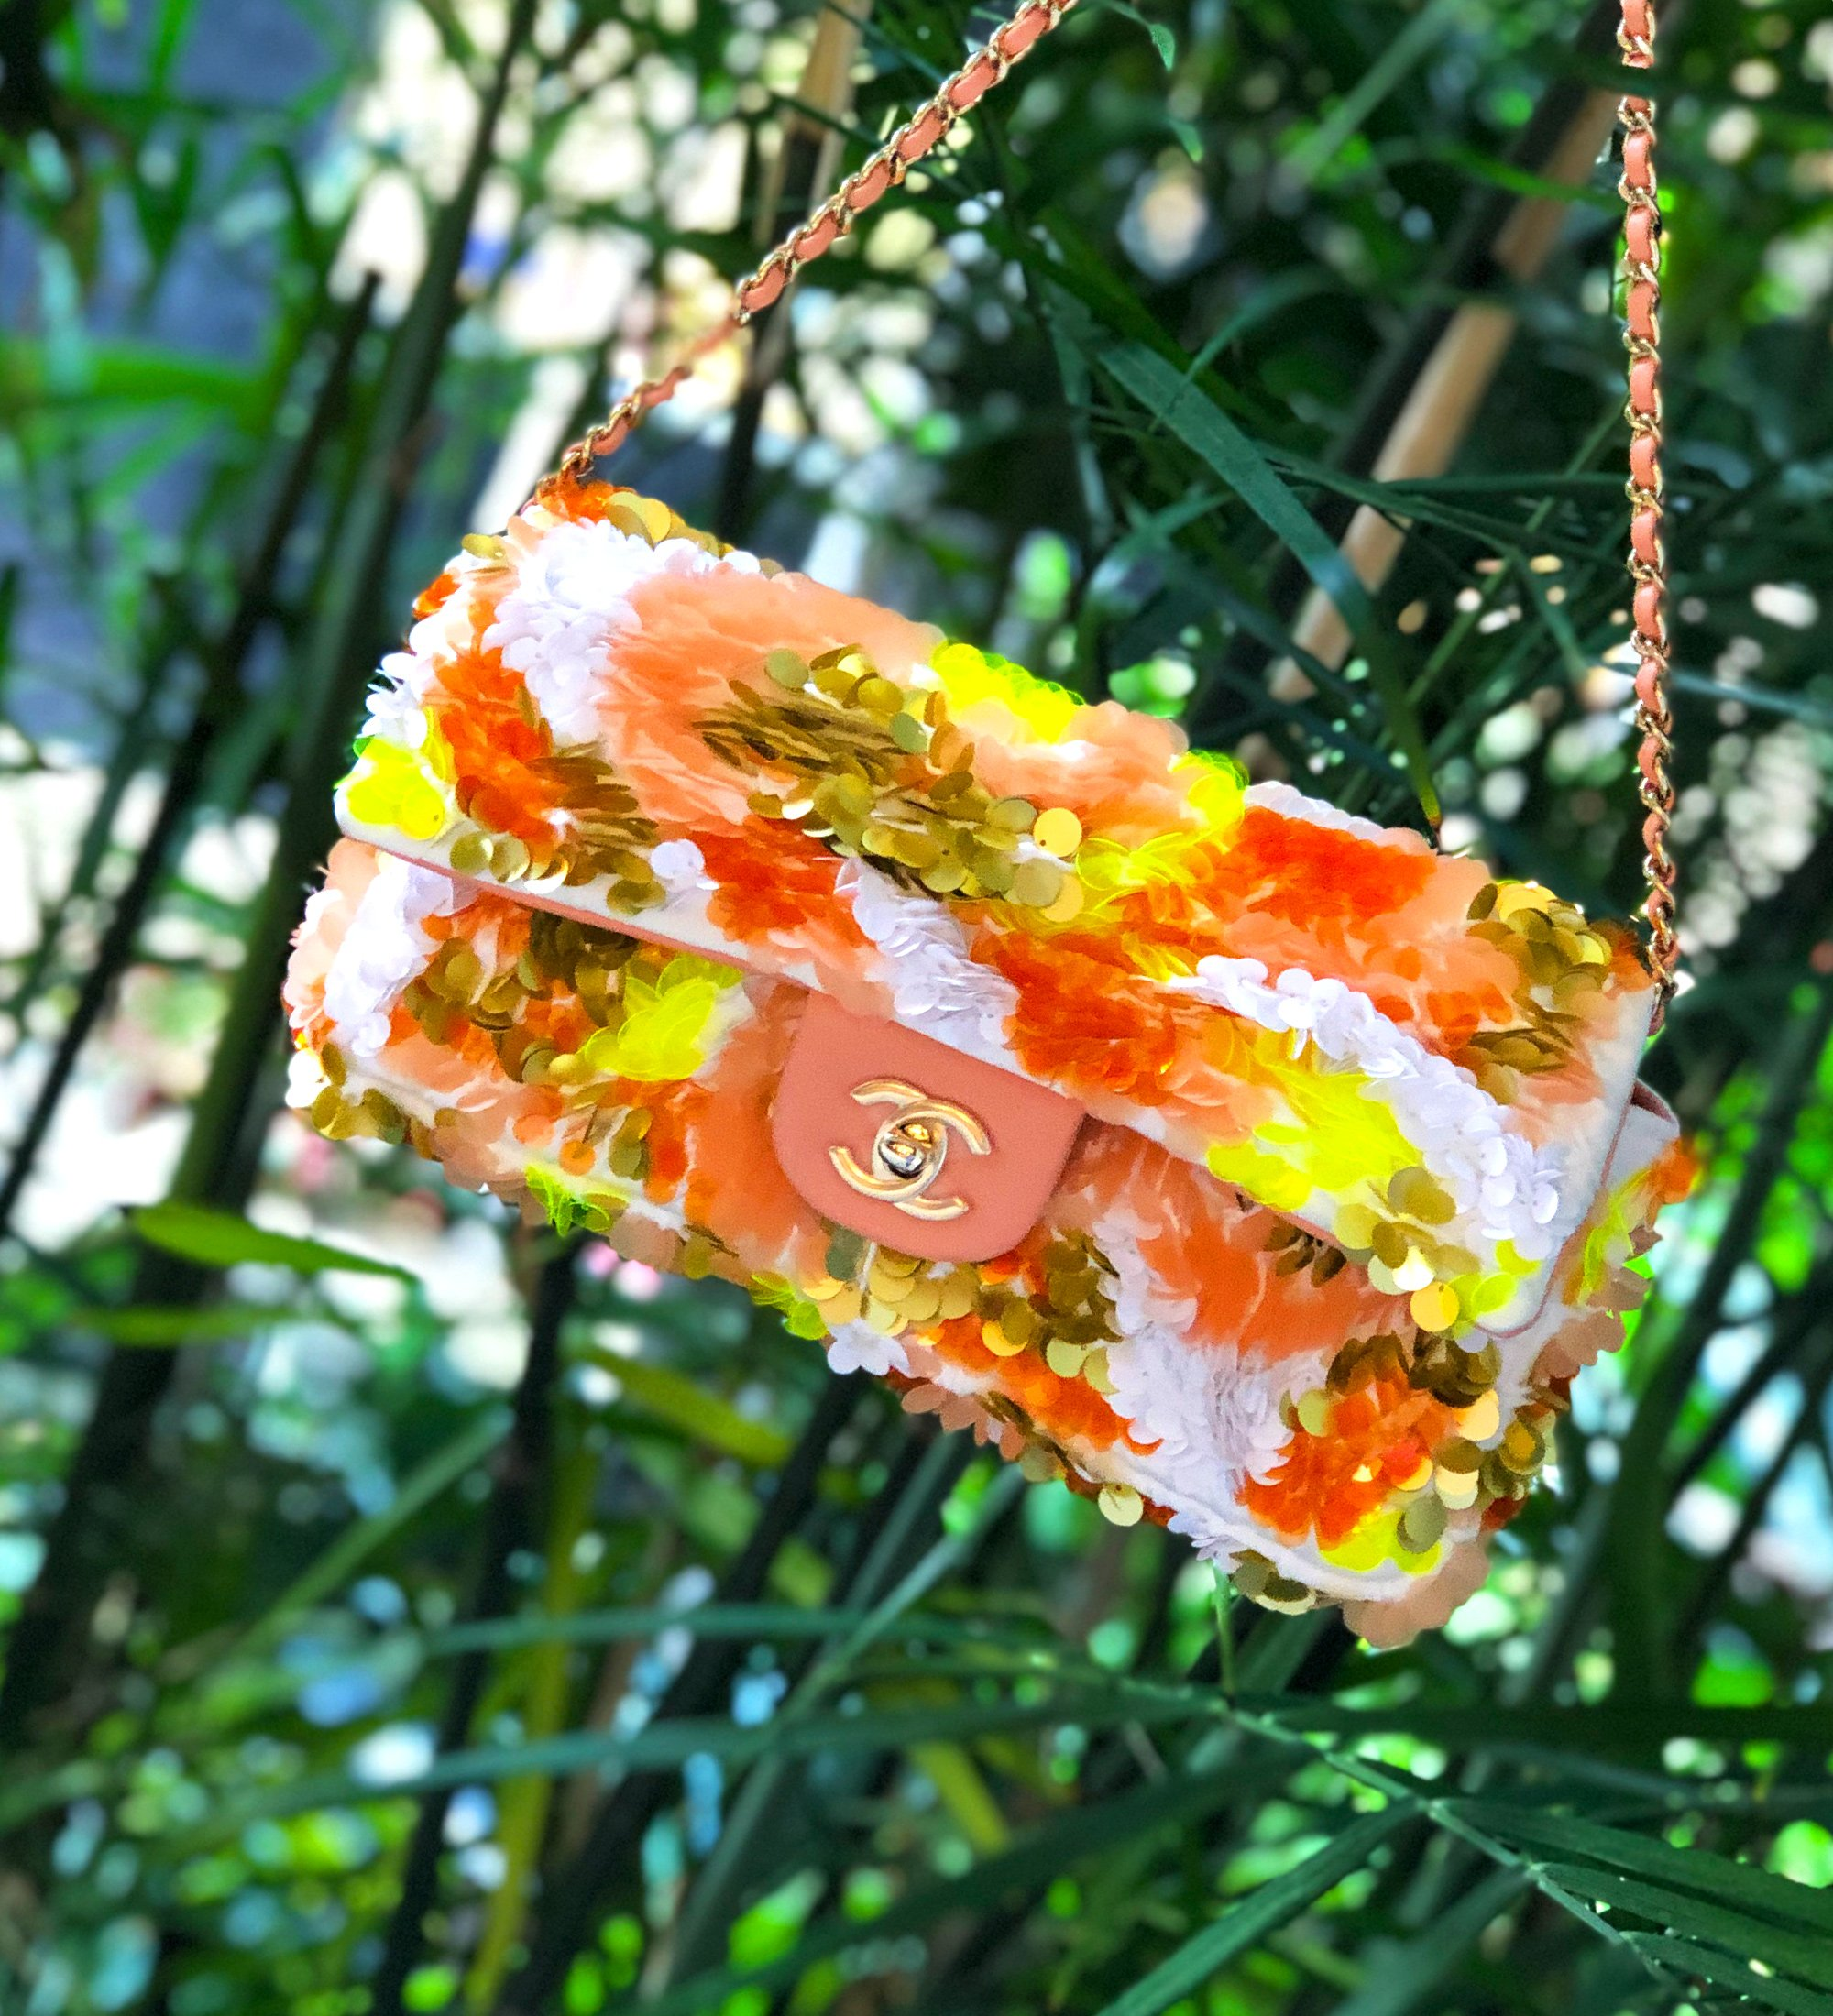 Chanel Sequin Flap Bag with yellow, orange and white sequins